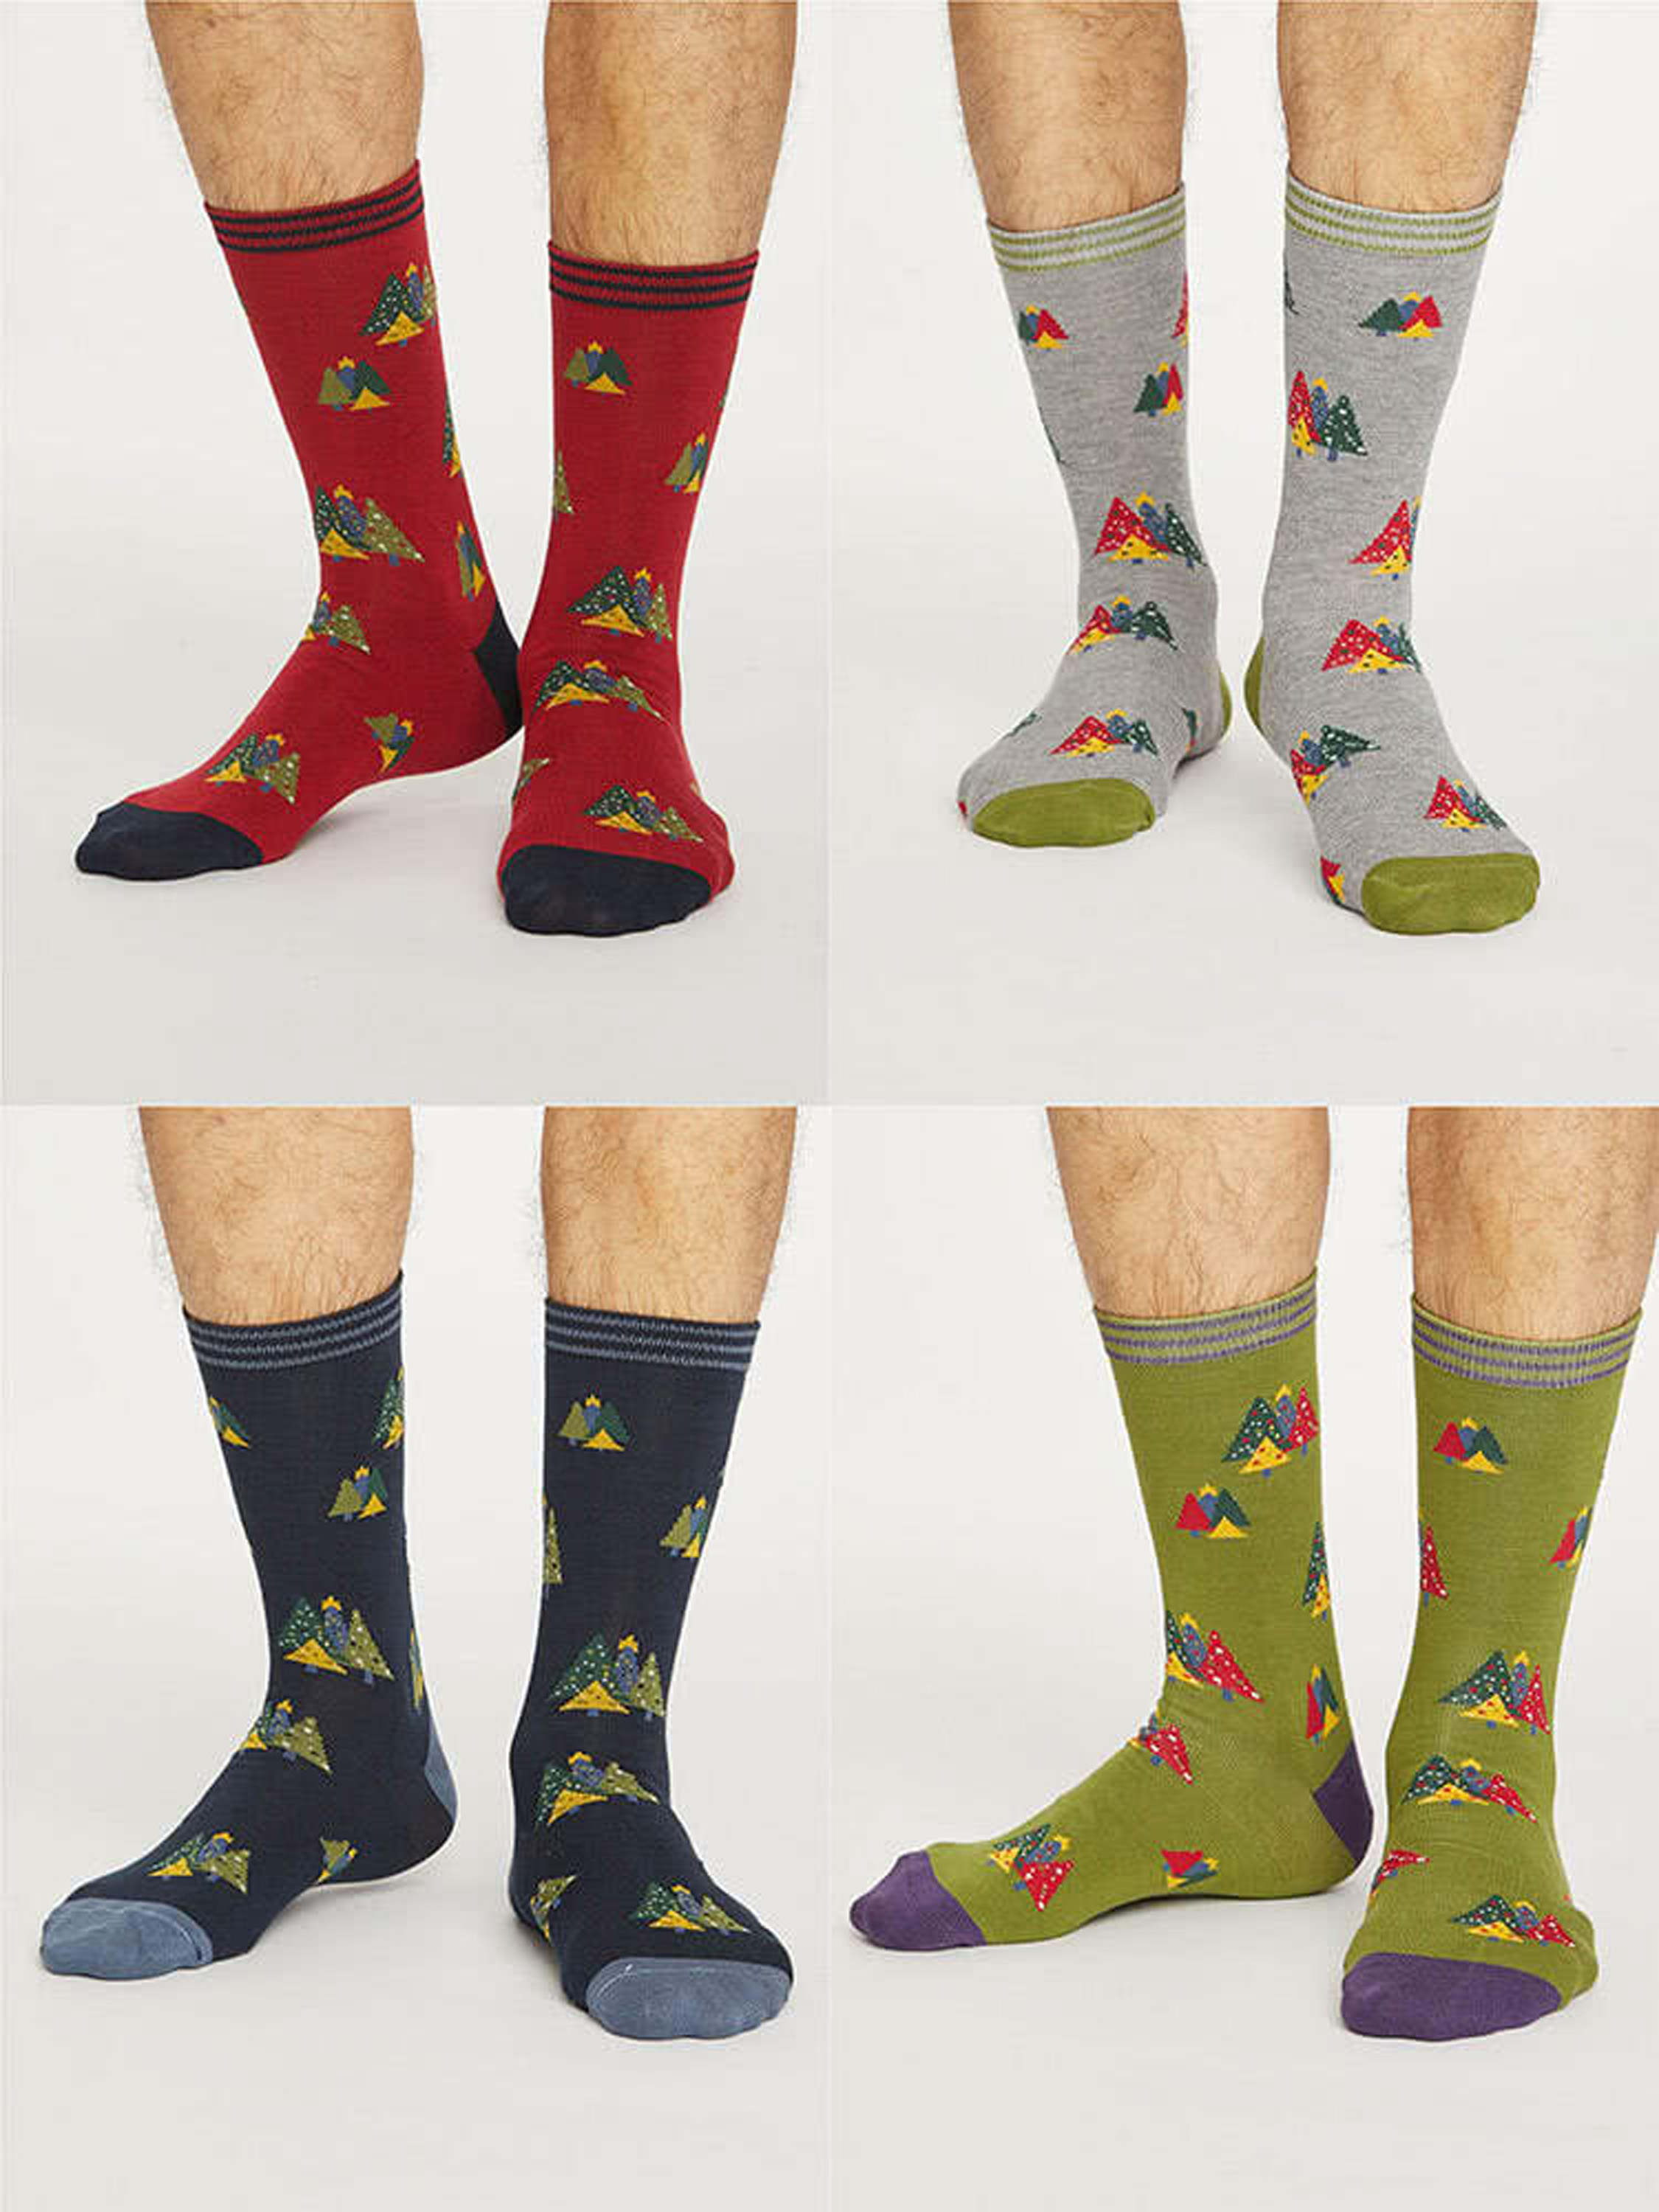 "<a href=""https://hanfhaus.de/thought-christmas-tree-socks-p-240450.html\"" itemprop=\""url\""><span itemprop=\""name\"">Christmas Tree Socks</span></a><br /><small>[<span itemprop=\""model\"">240450</span>]</small>"